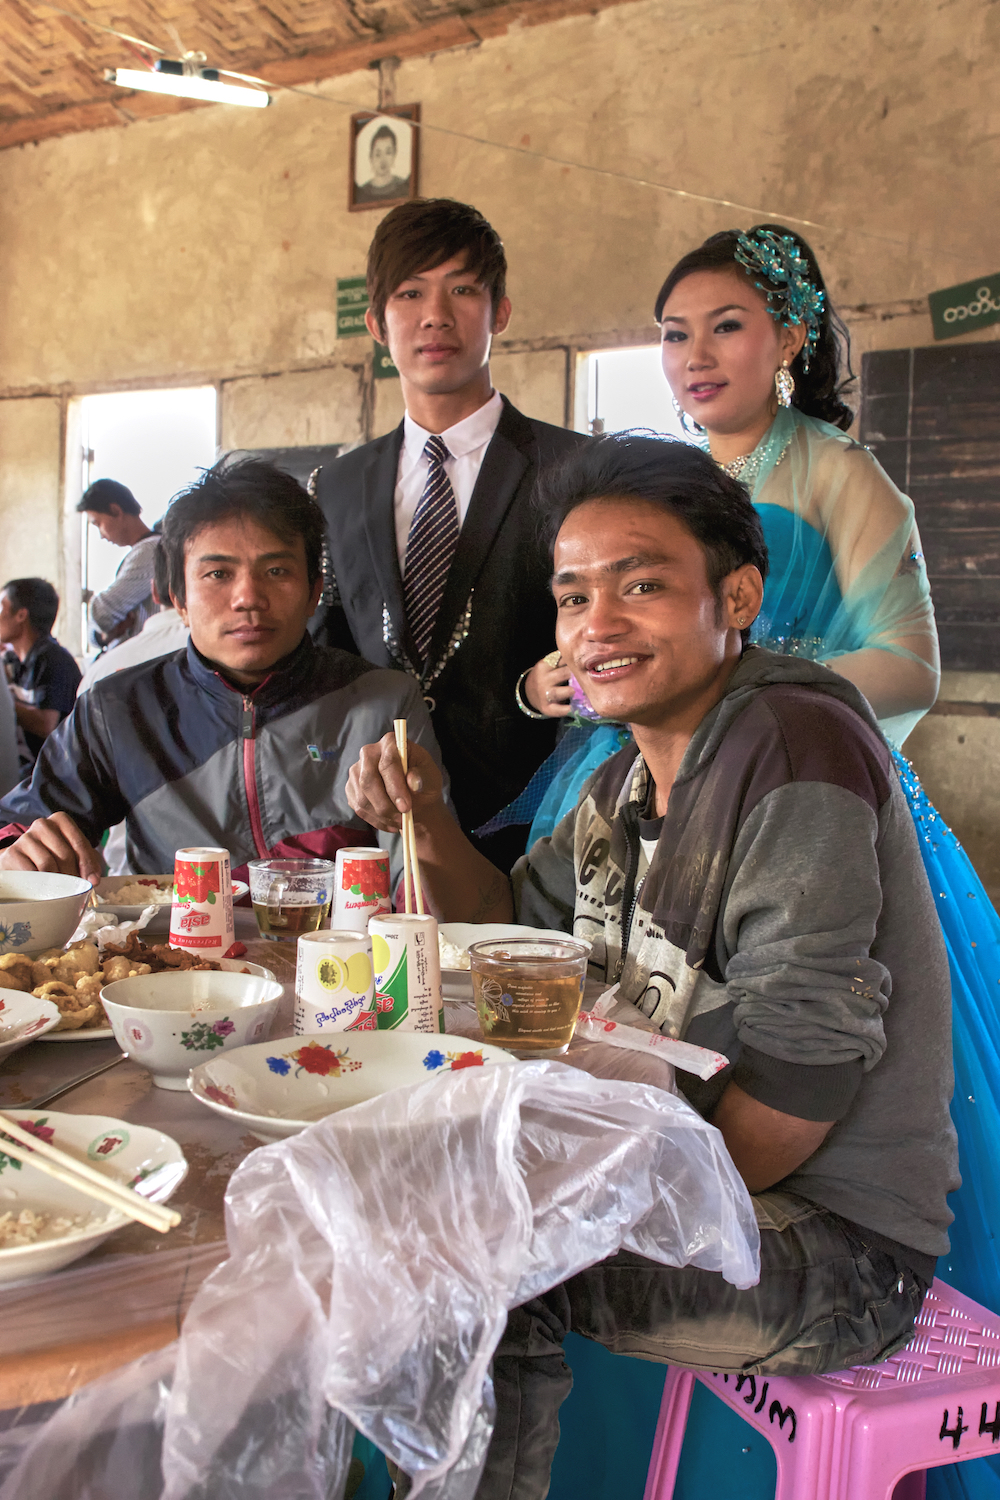 Khasar_S_BrideAndGroom_Thura_Jo2_MinenGaudVillage_ShanState_Myanmar_Winter_2013.jpg